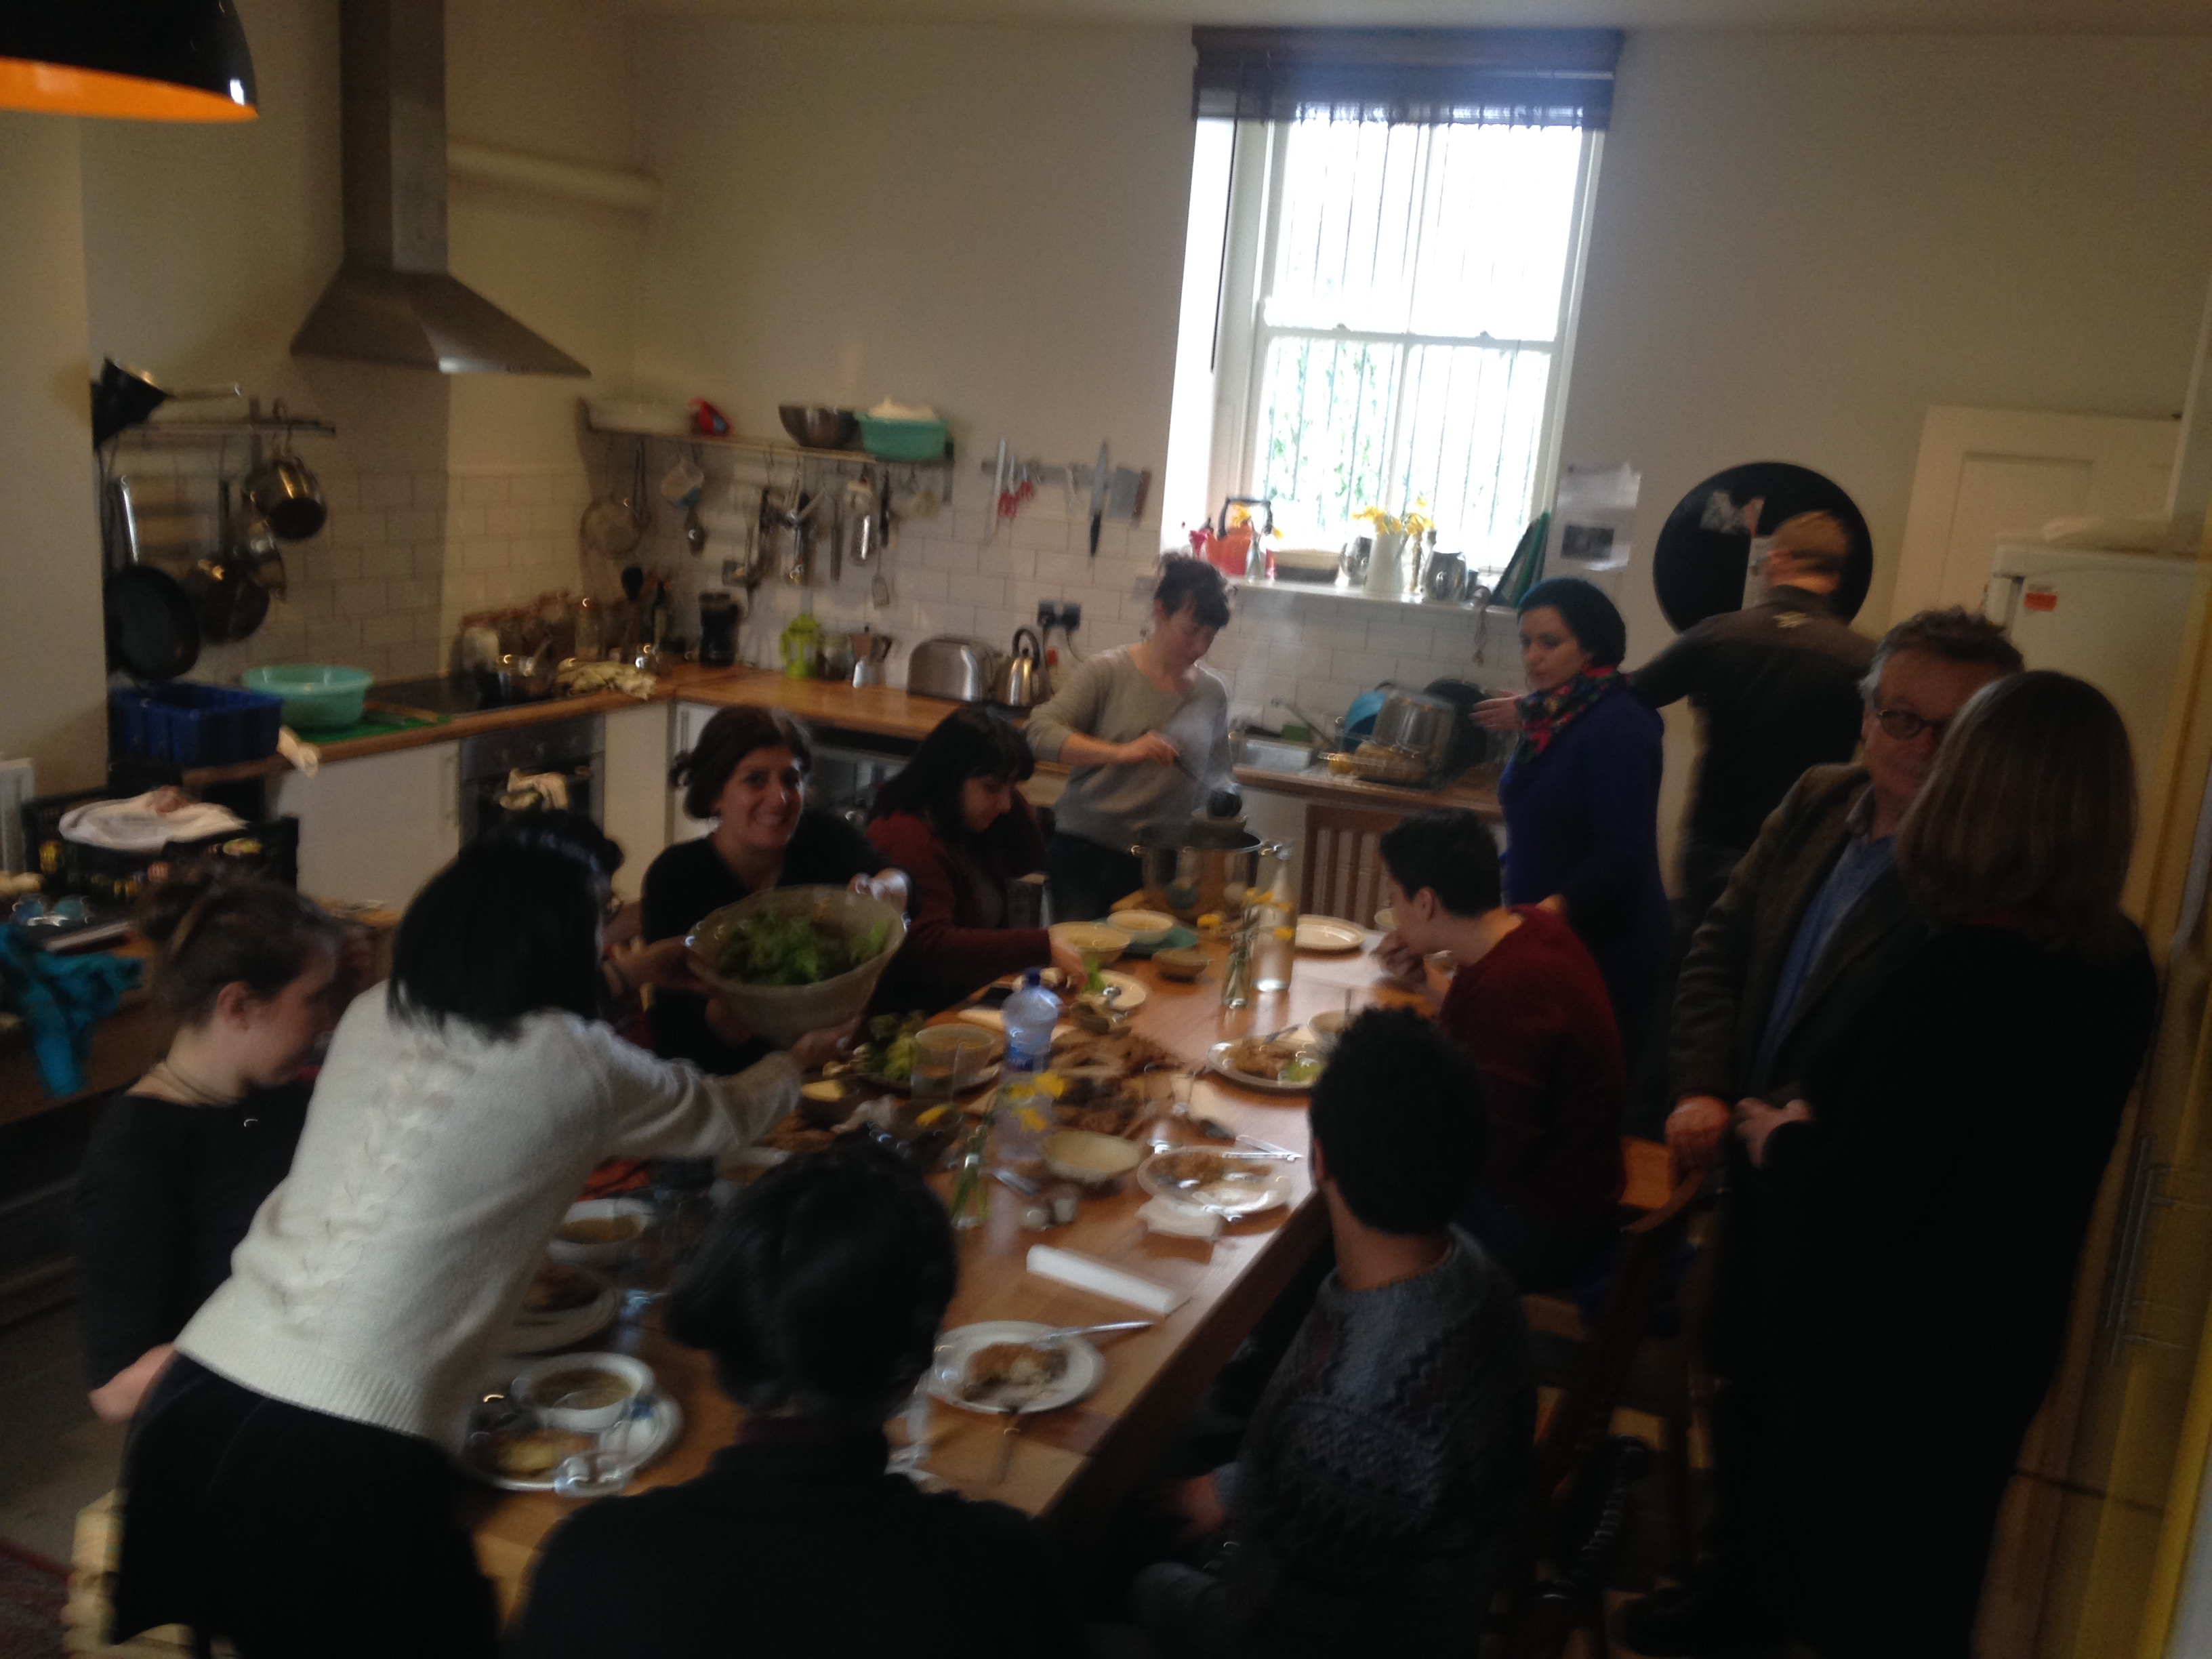 Workshop students and participants eating lunch together in IMMA's artist studios